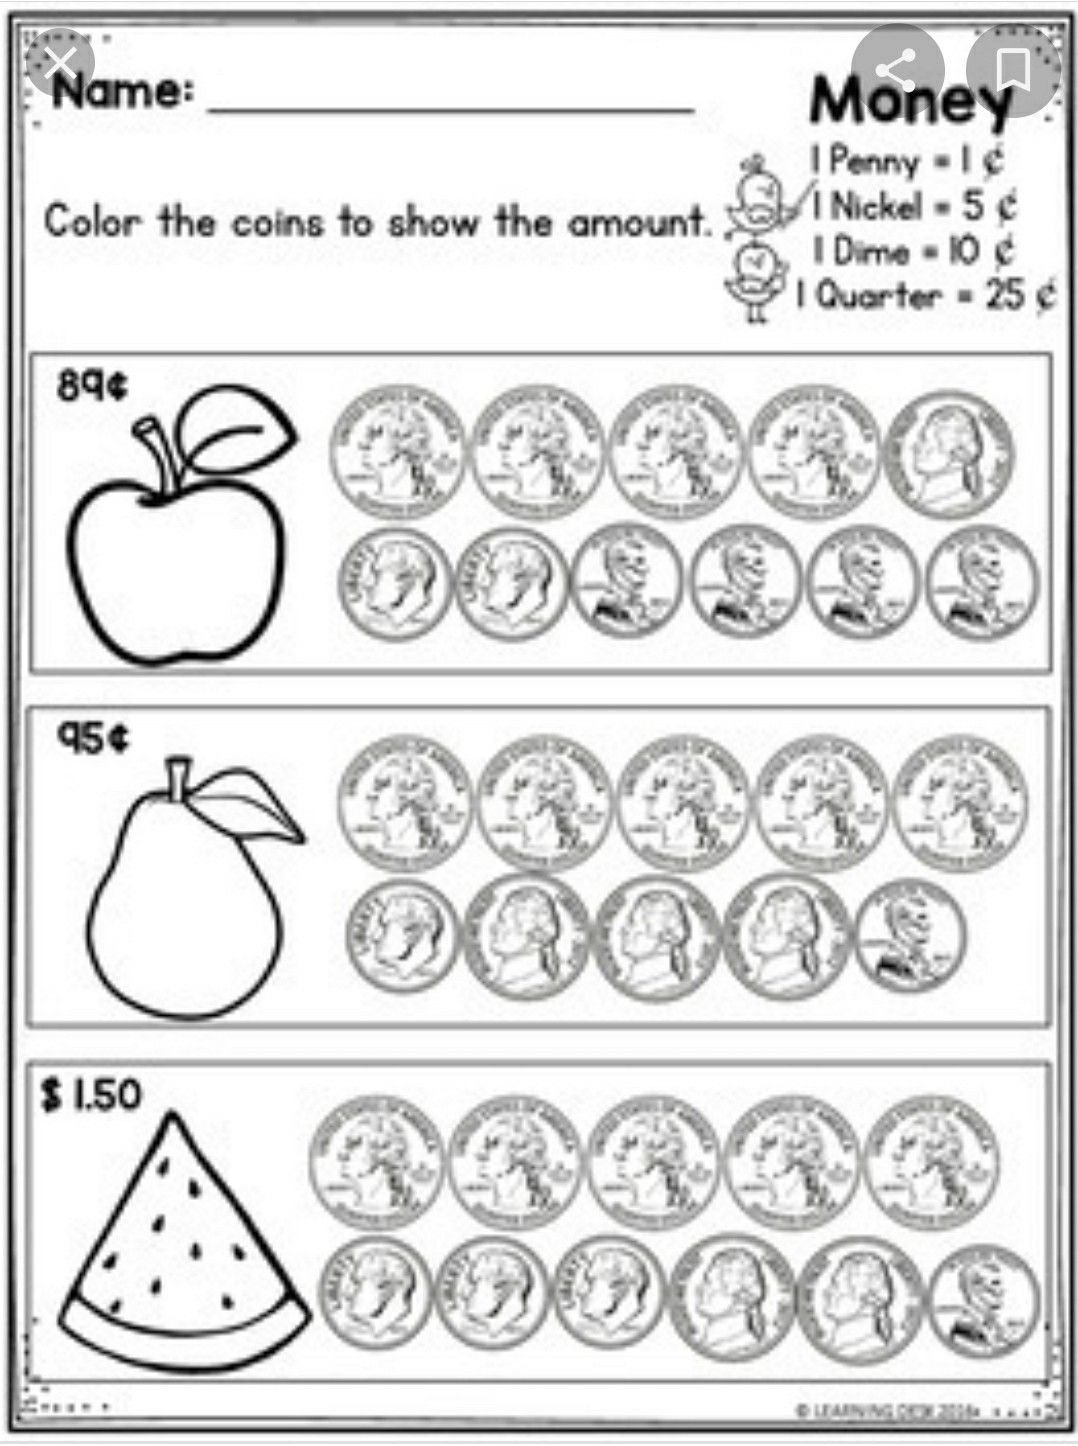 Counting Coins Worksheets 2nd Grade Pin by Jan Tanega On Math Worksheets In 2020